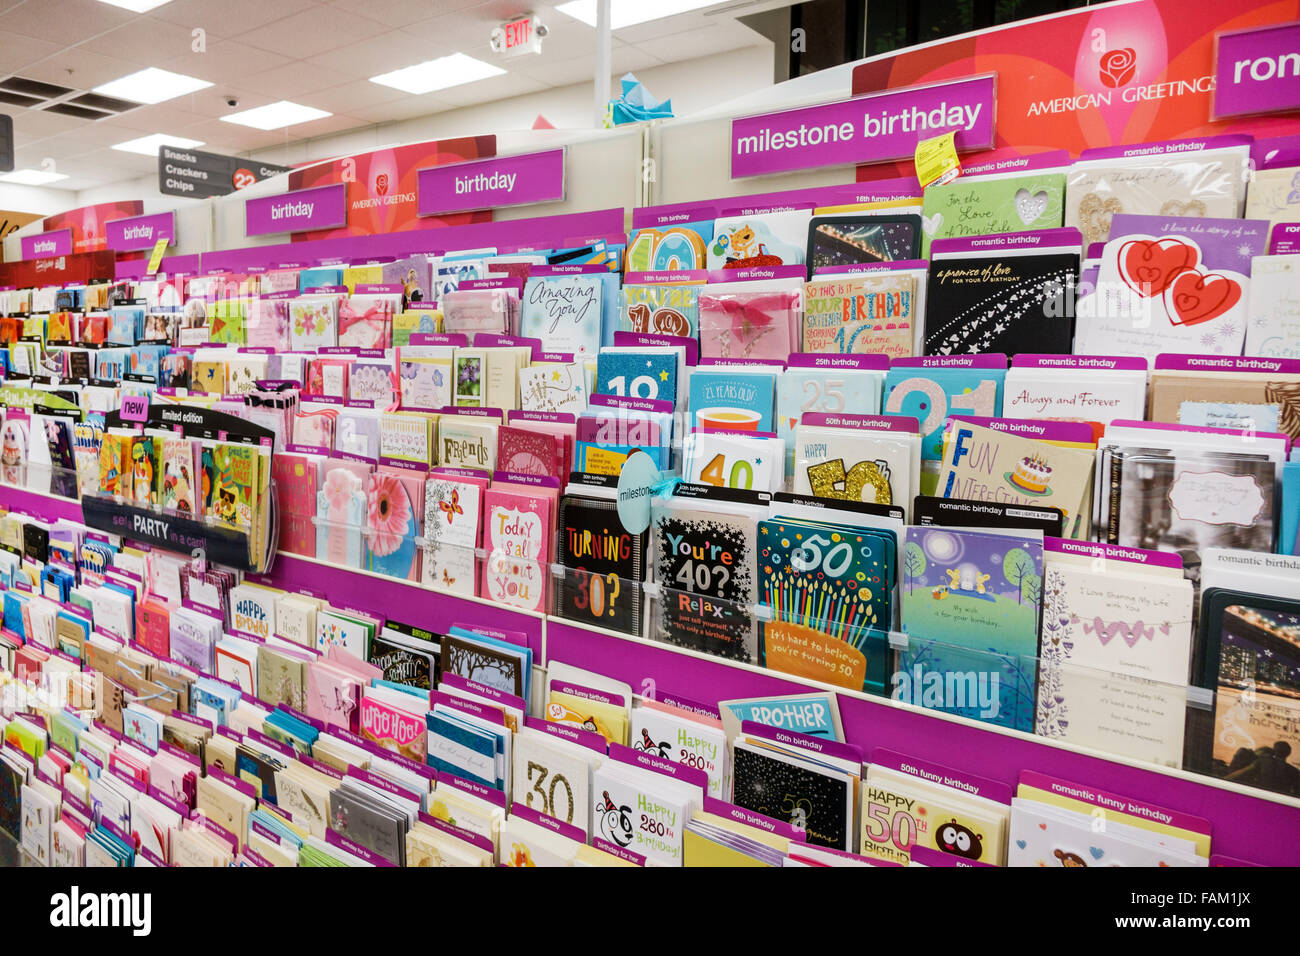 Display greeting cards stock photos display greeting cards stock gainesville florida cvs pharmacy drugstore inside sale display greeting cards birthday stock image m4hsunfo